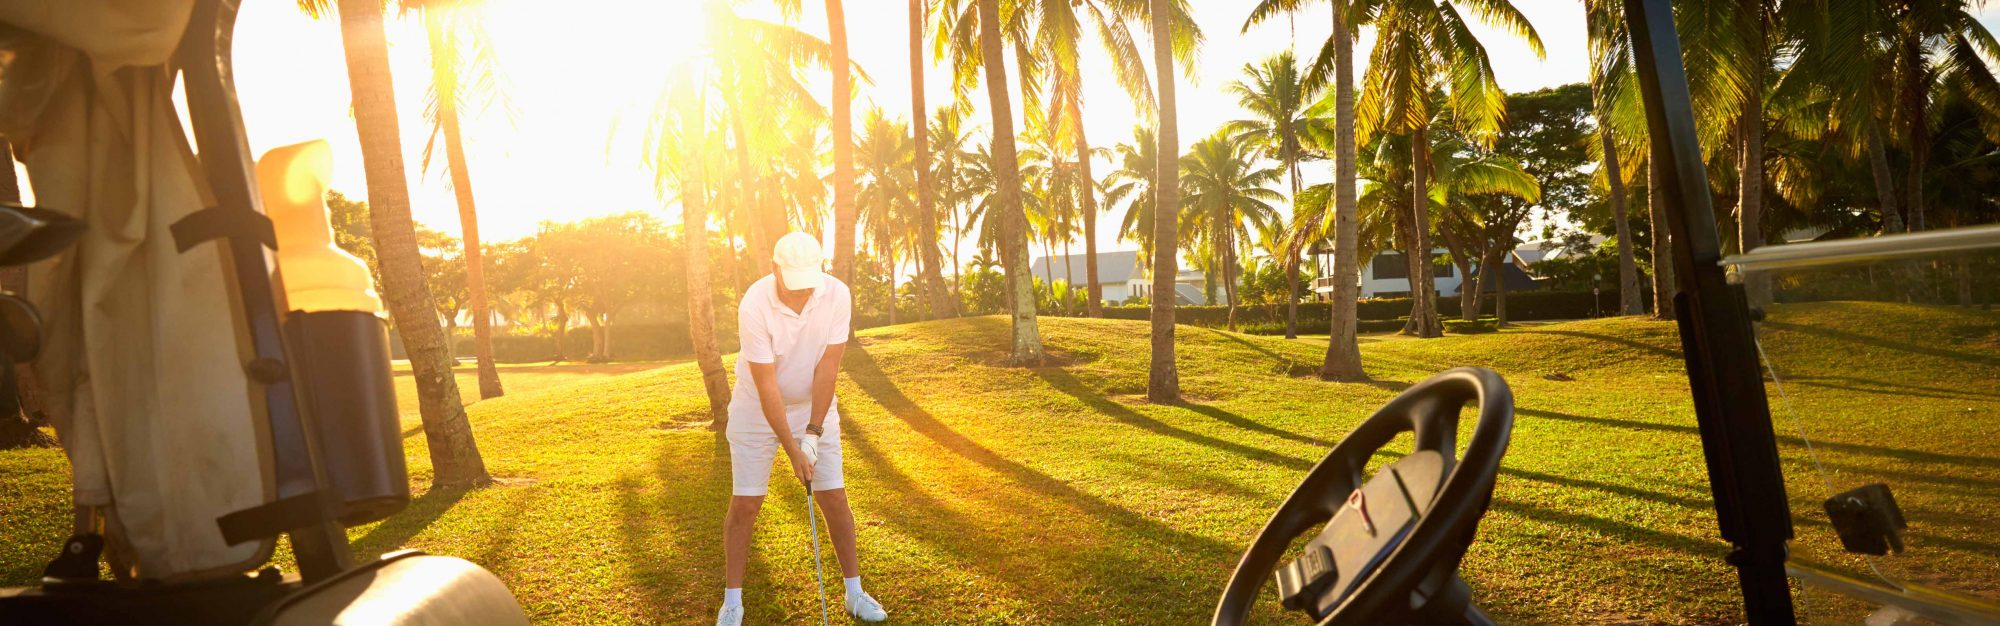 It's golf's silent killer - so why are we not taking it seriously?